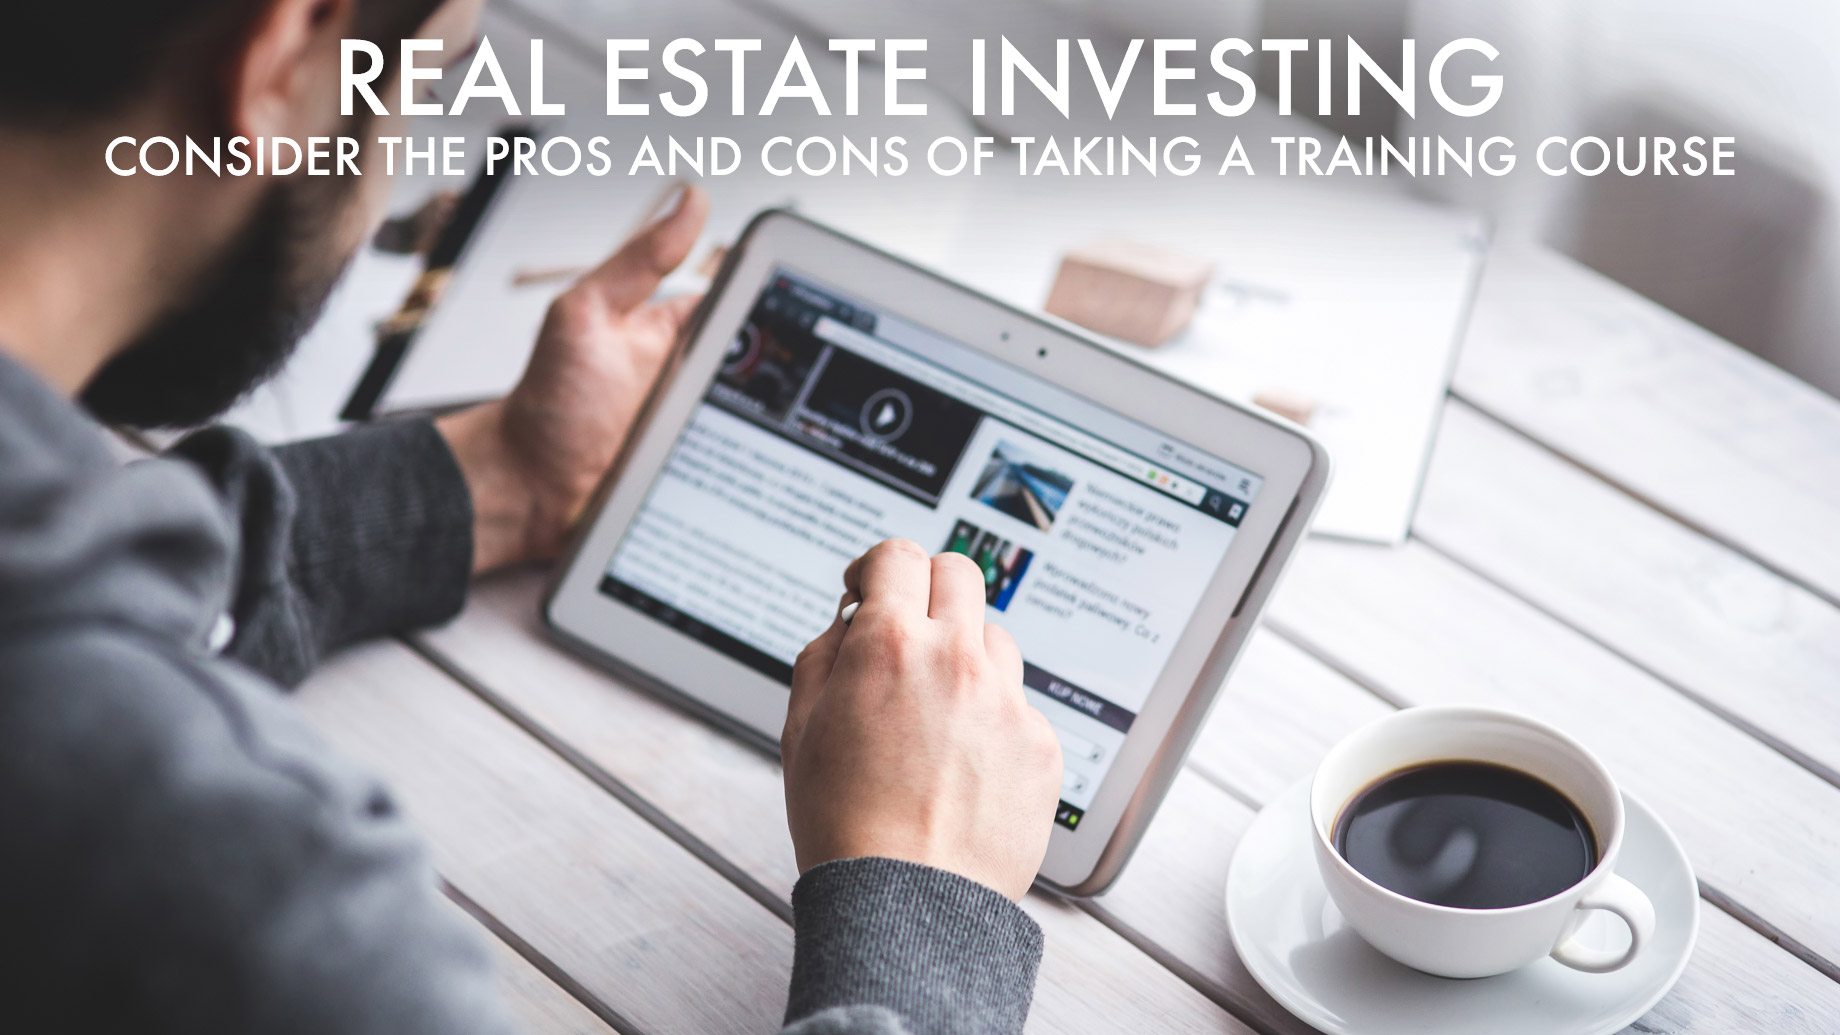 Real Estate Investing - Consider the Pros and Cons of Taking a Training Course